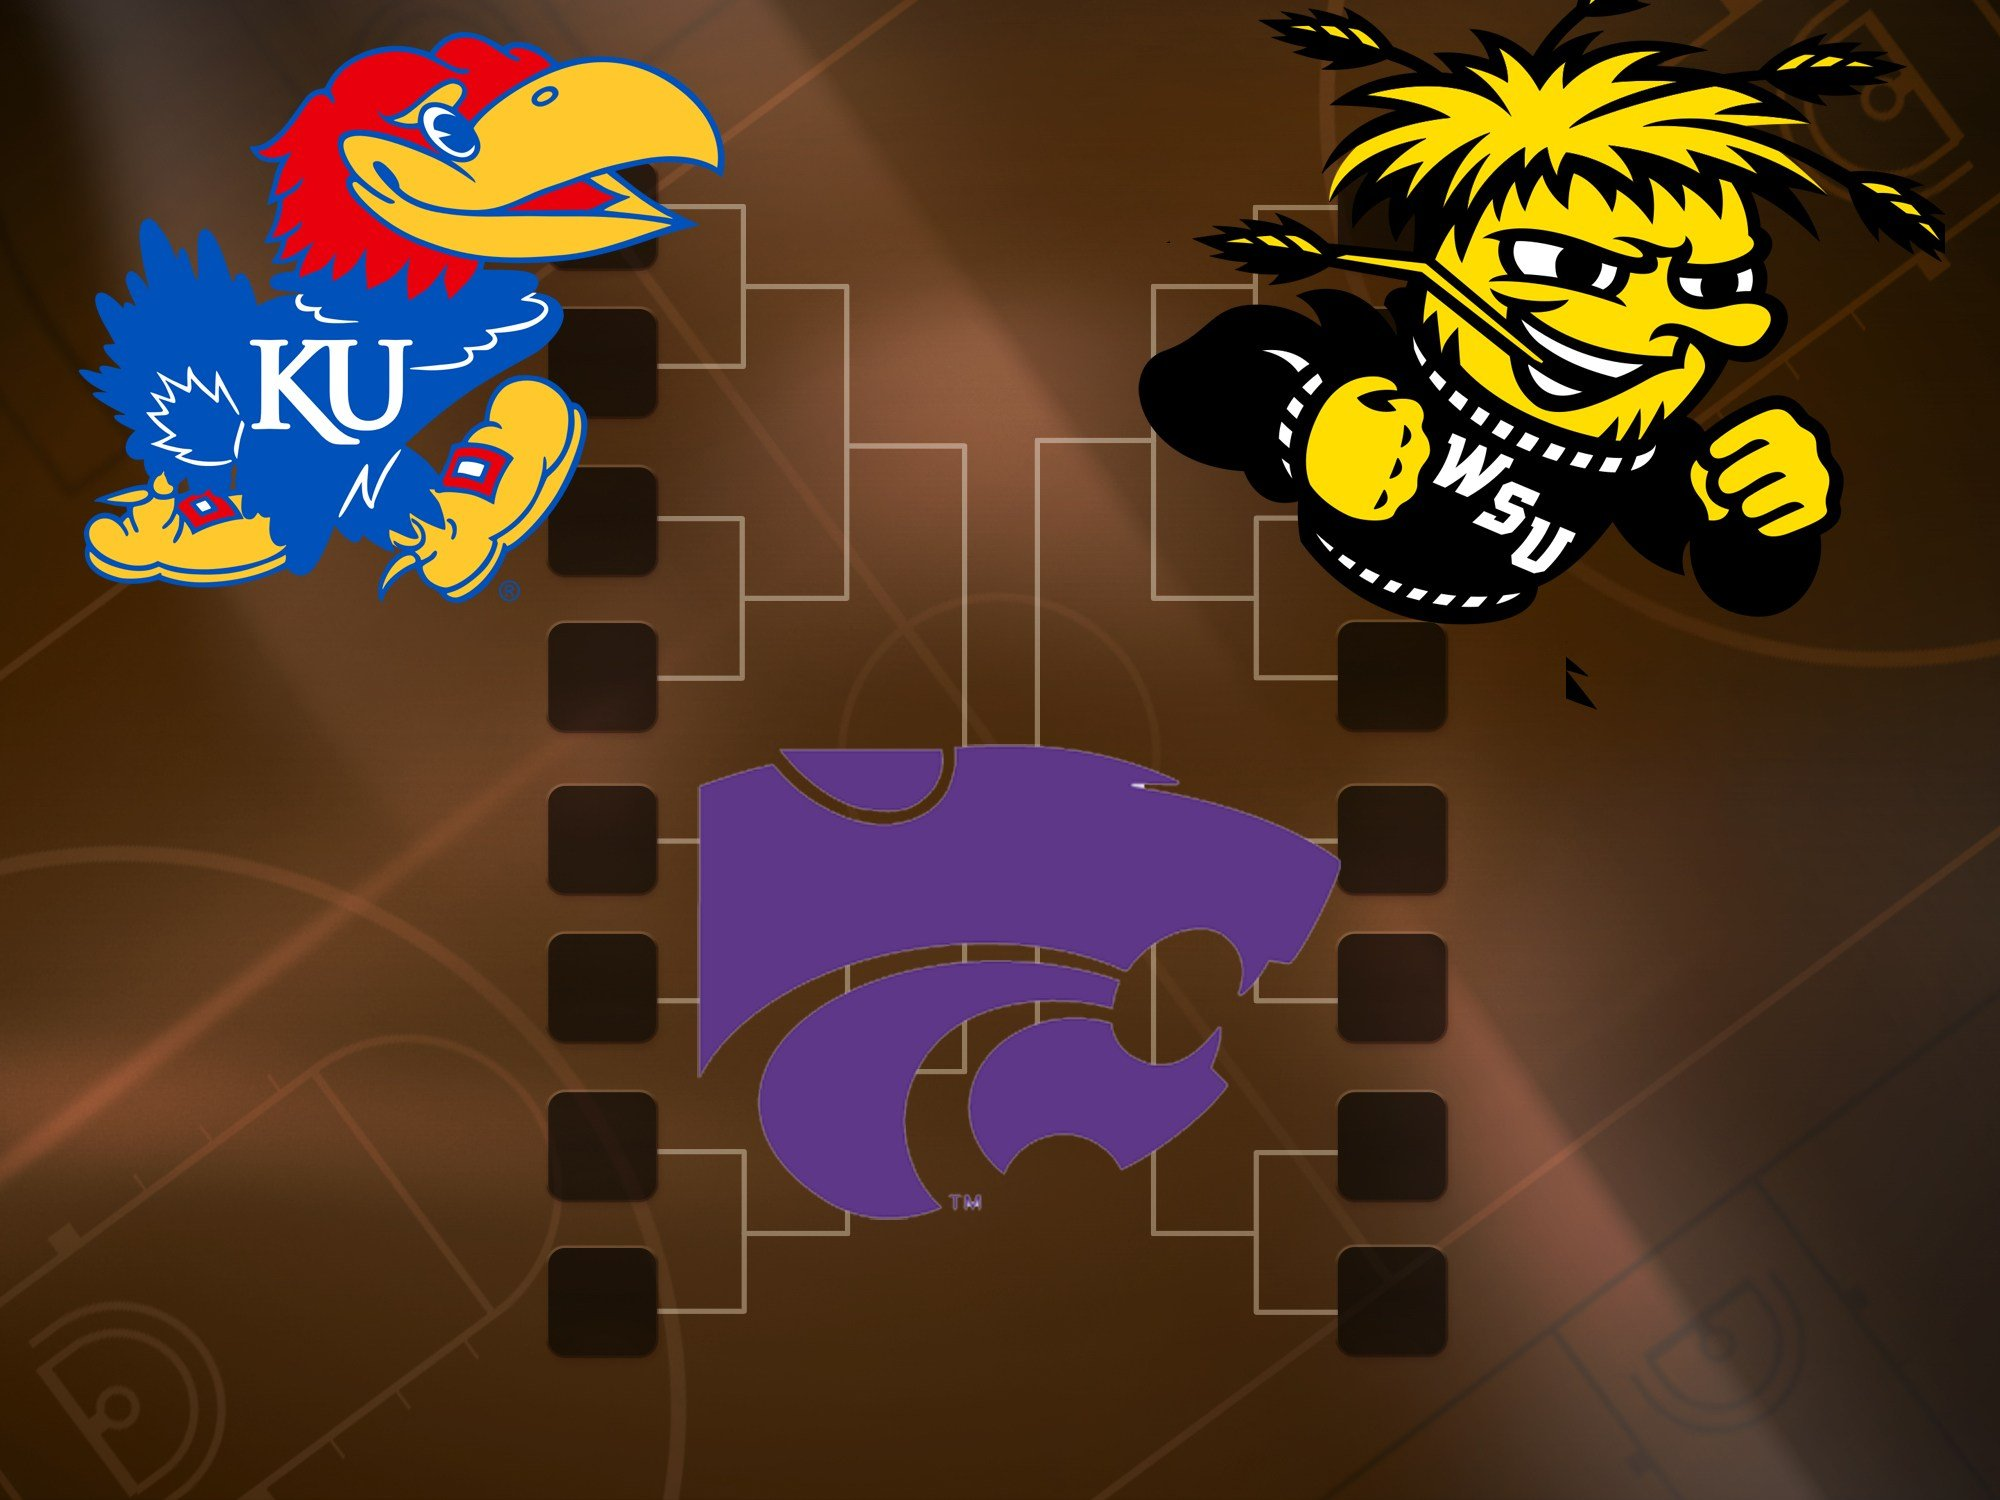 Game times have been announced for the opening games for the three area teams that made the NCAA Tournament.